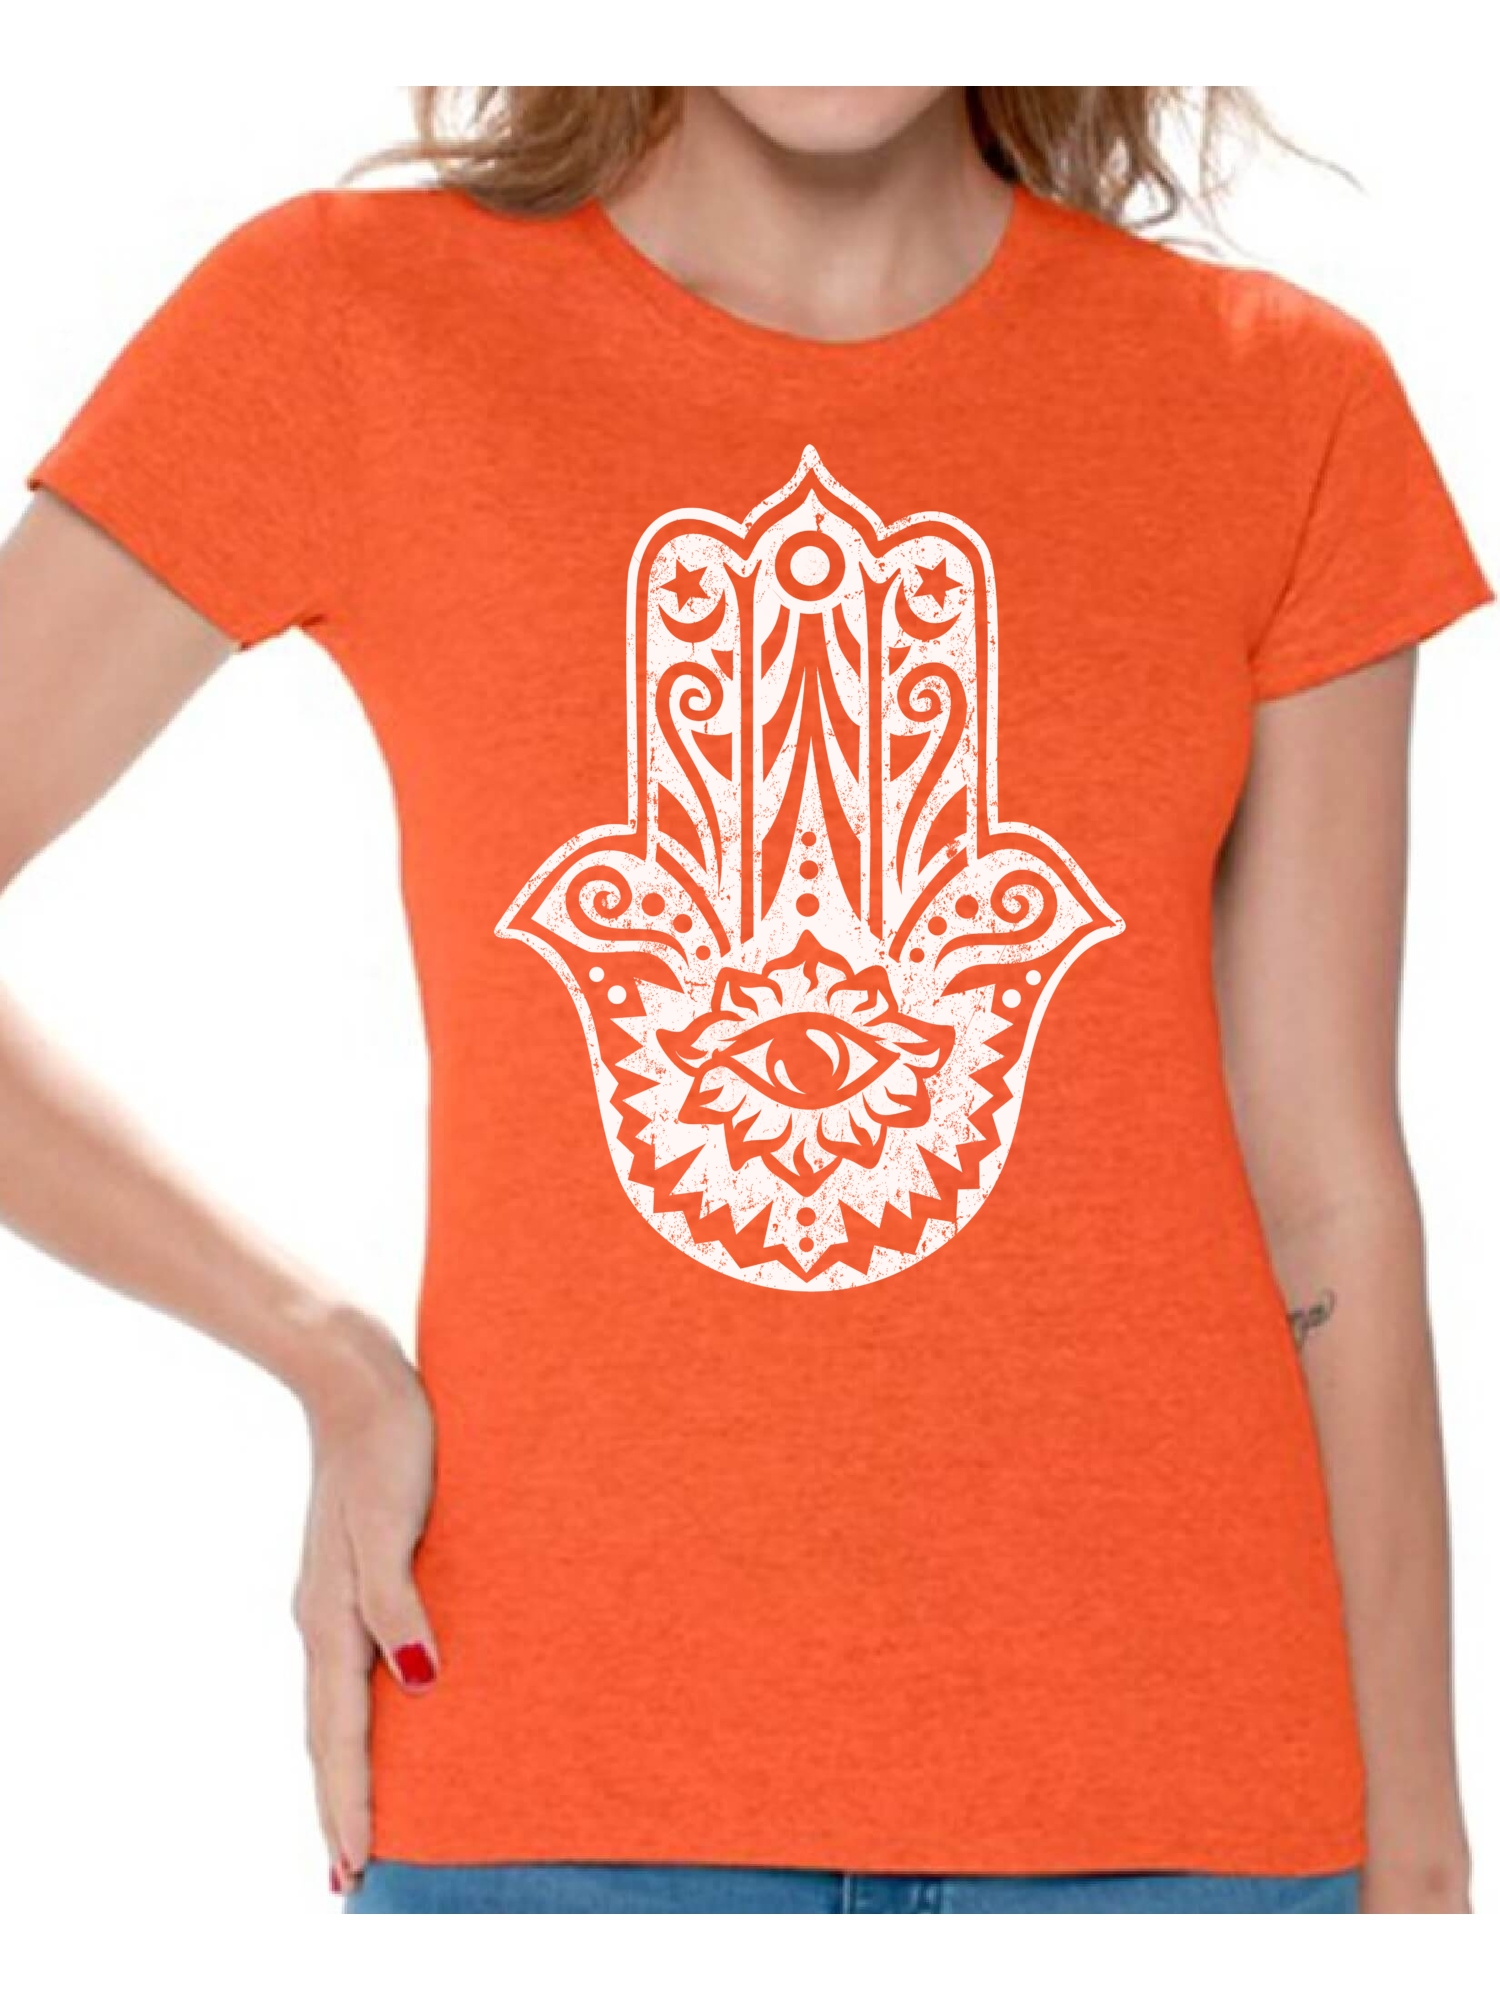 Floral Hamsa Black Boys Youth Graphic T Shirt Design By Humans